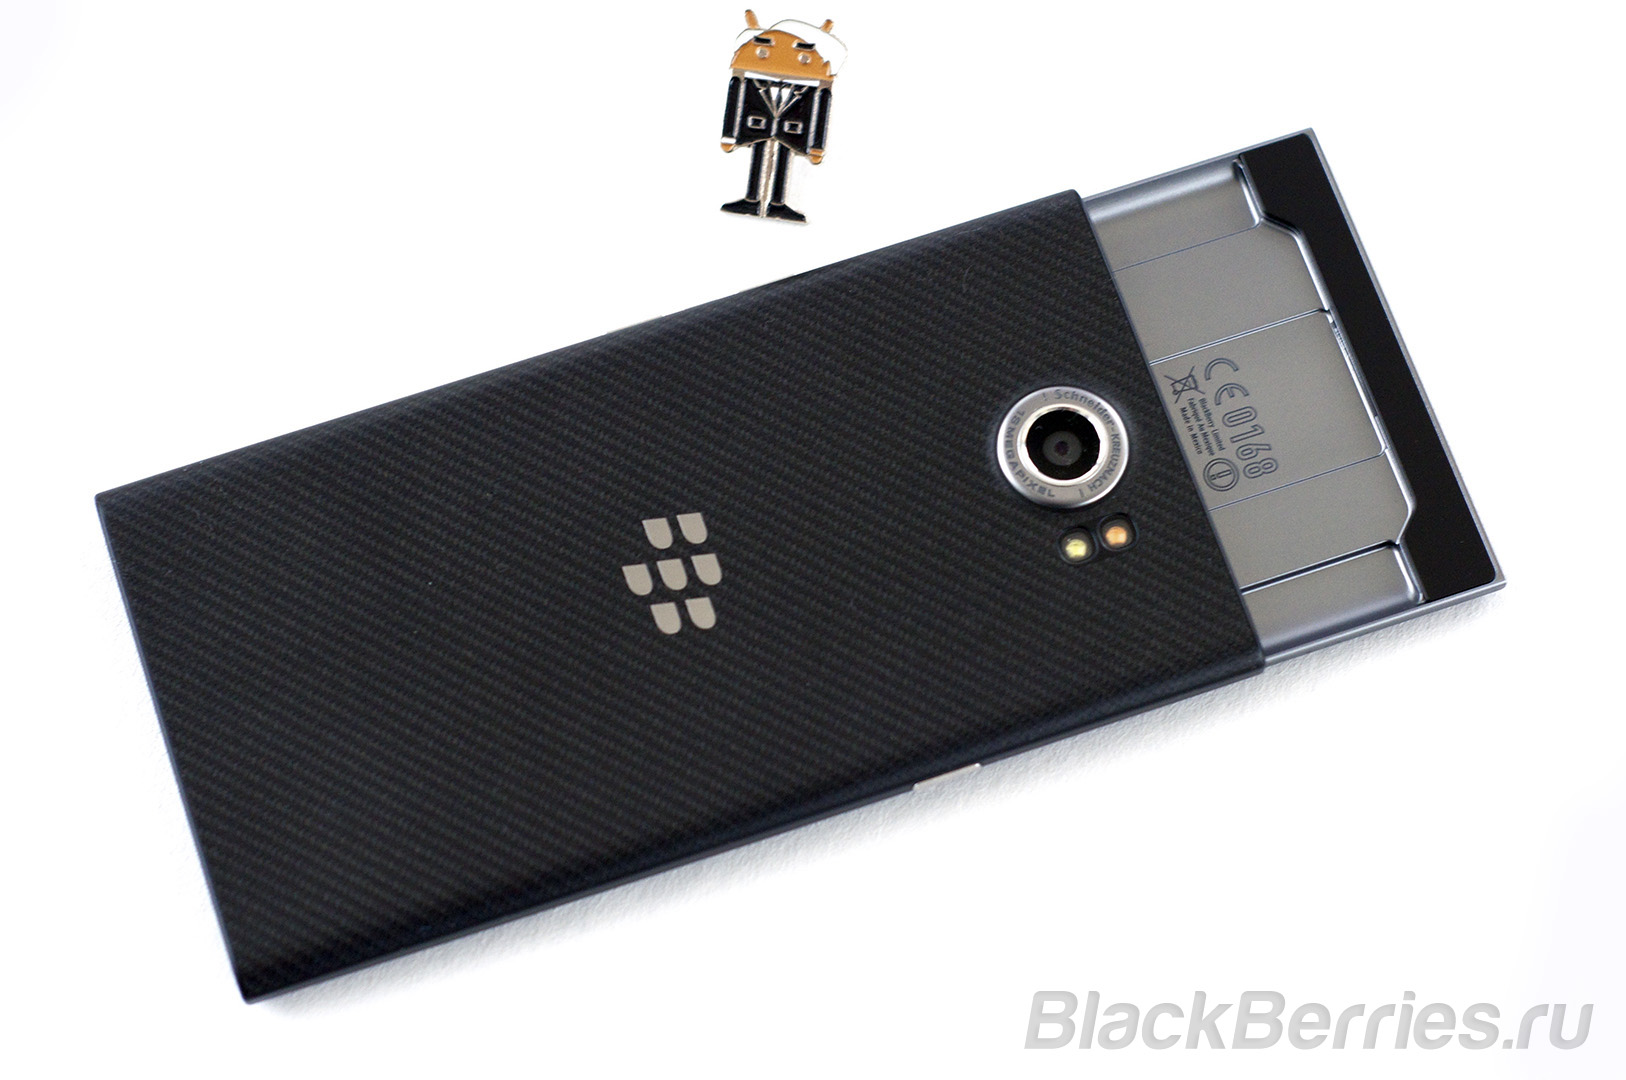 BlackBerry-Priv-Review-121